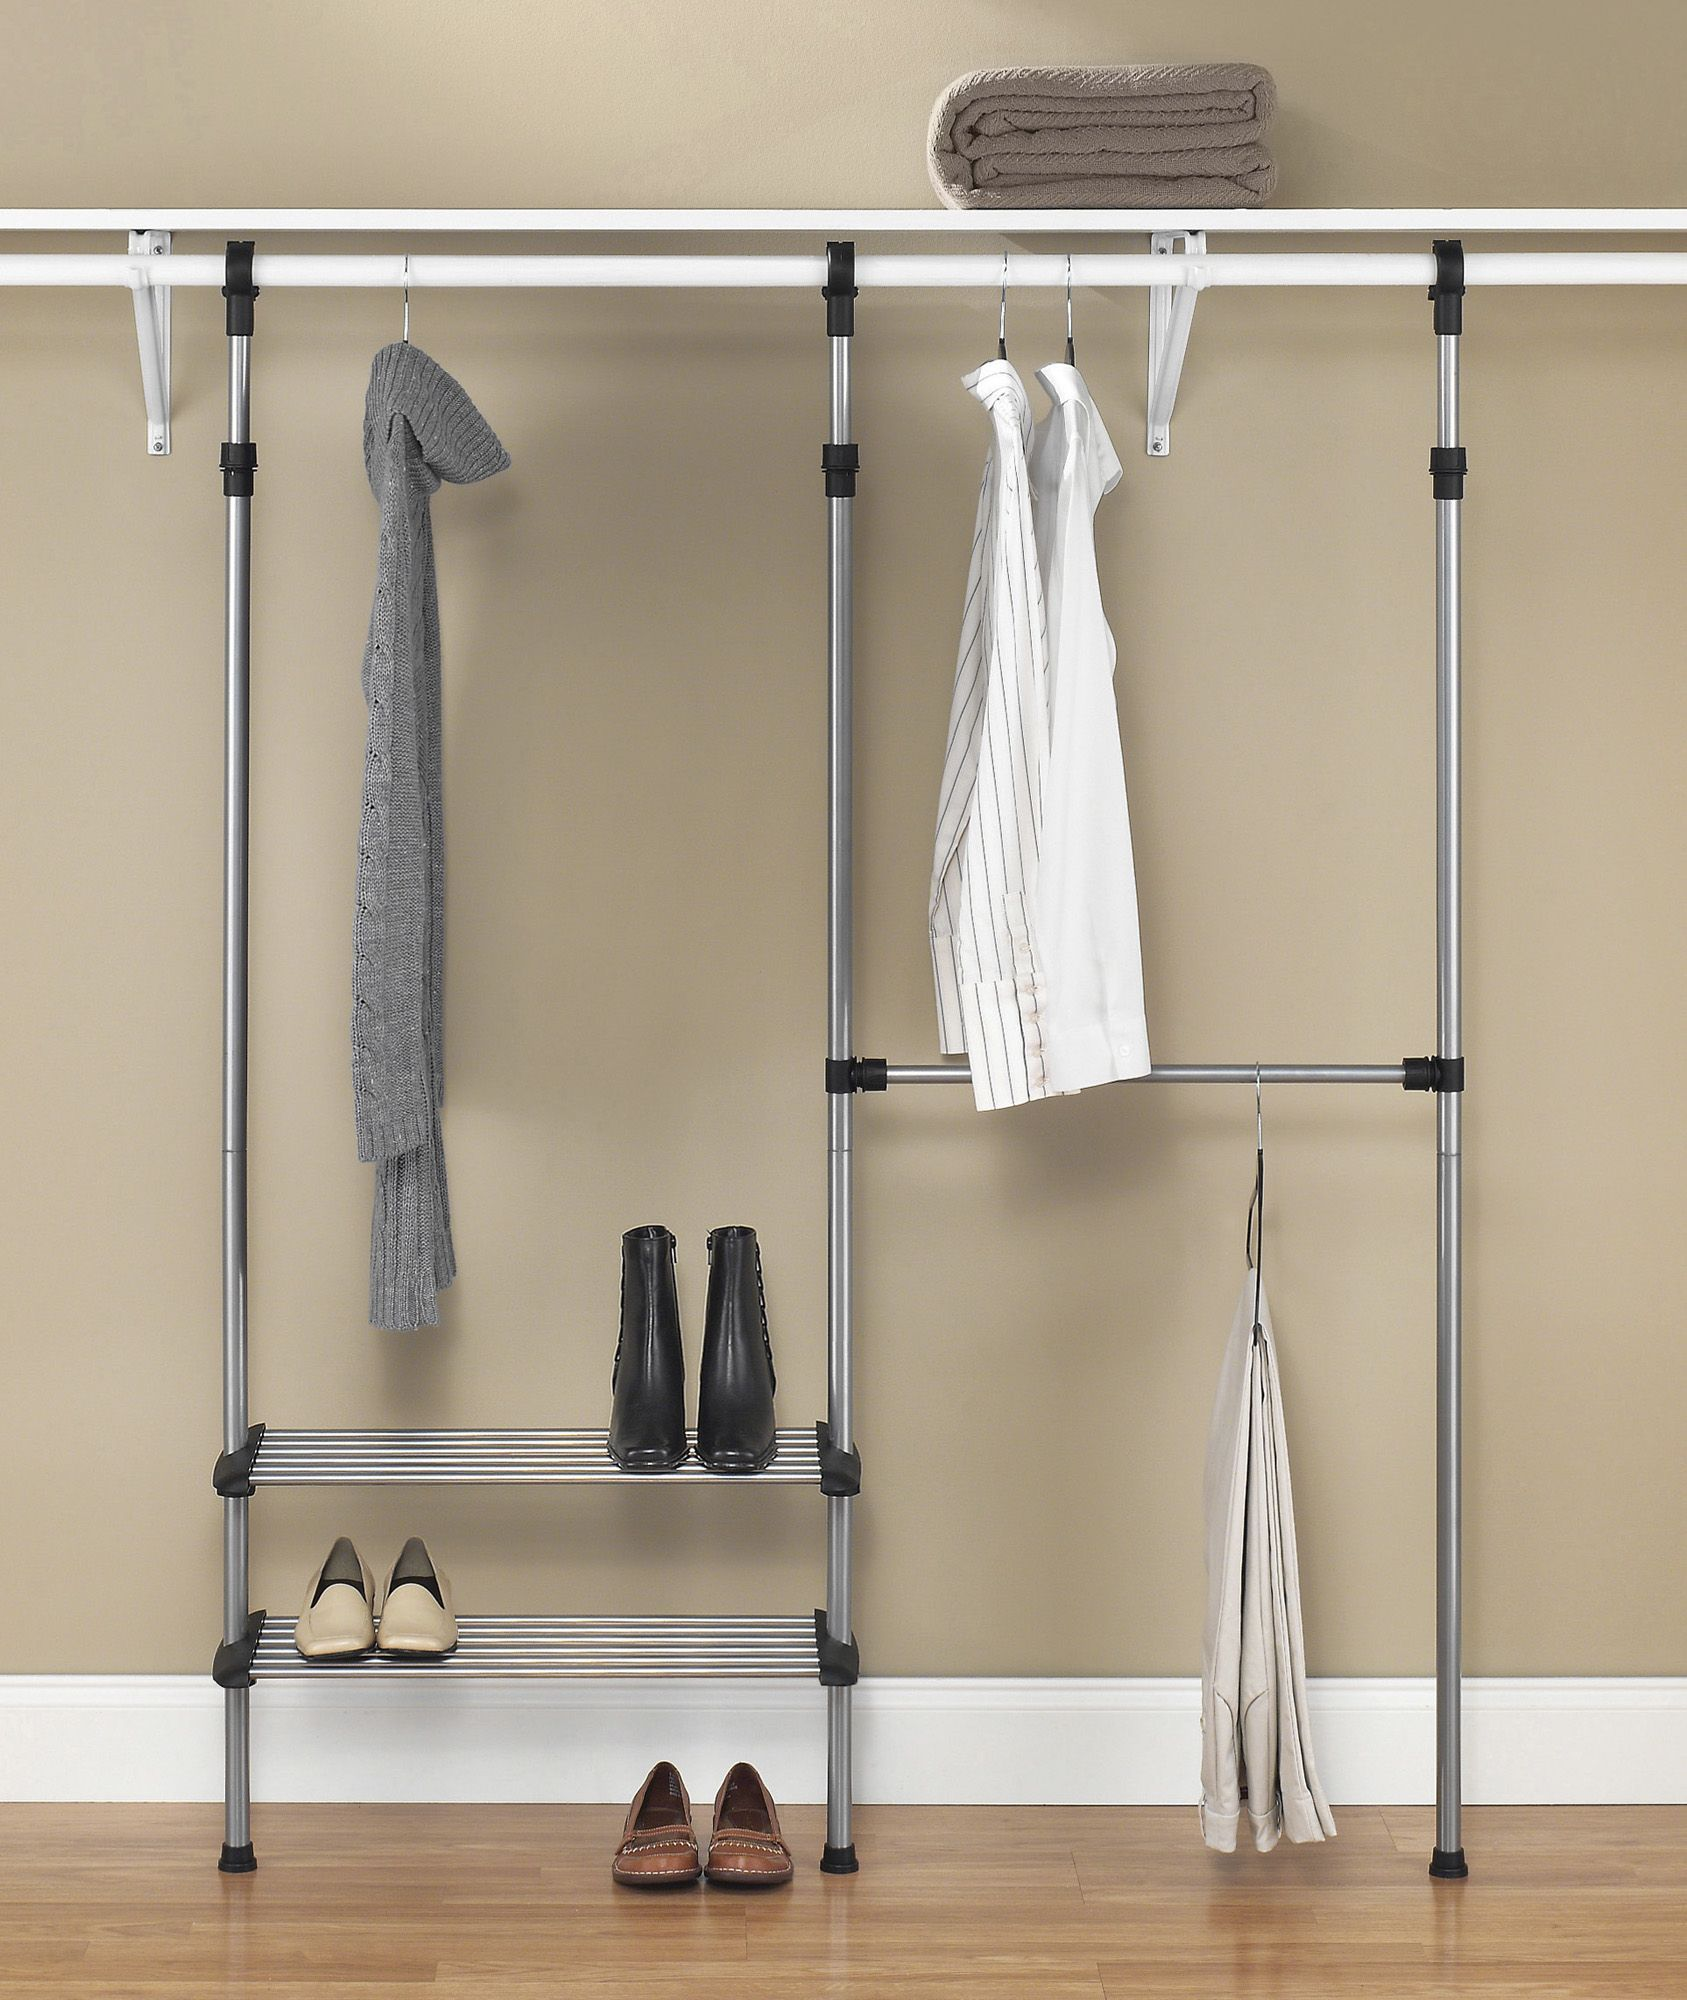 fingerhut alcove closet rod system home decor closet make up rh pinterest jp